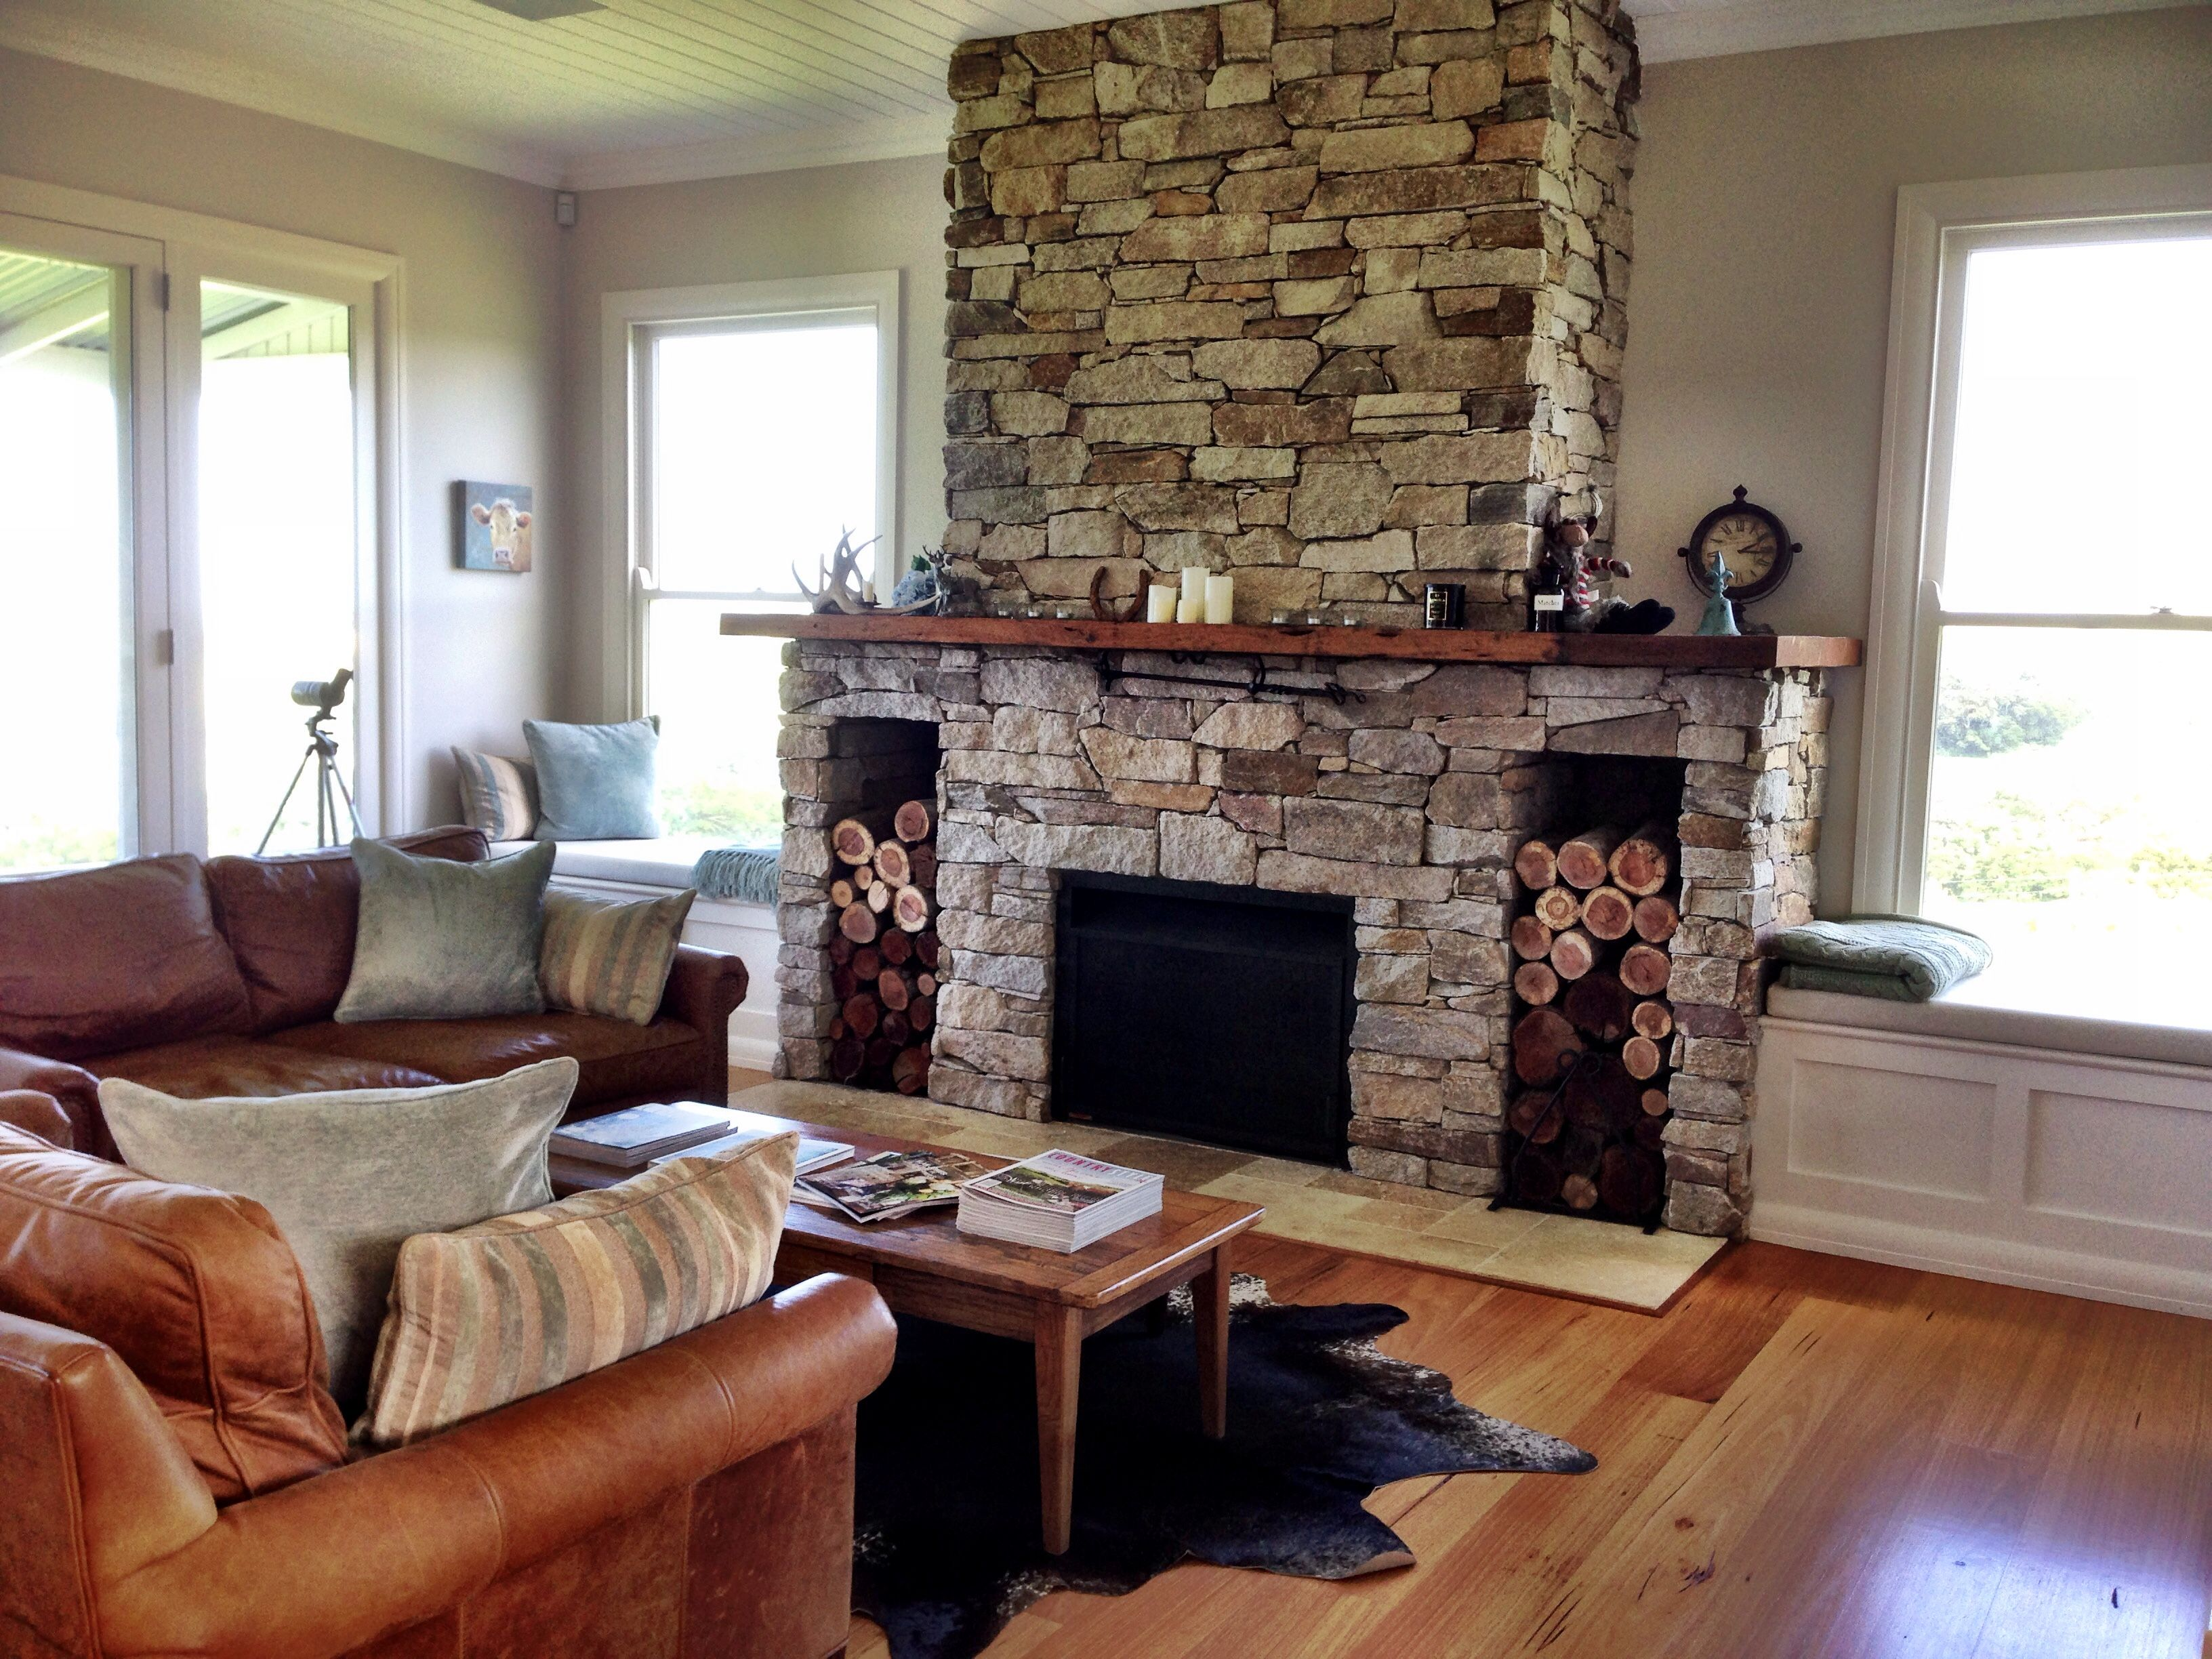 Best Pin By Karen Bruner On Stone For Walls Fireplace Design 400 x 300